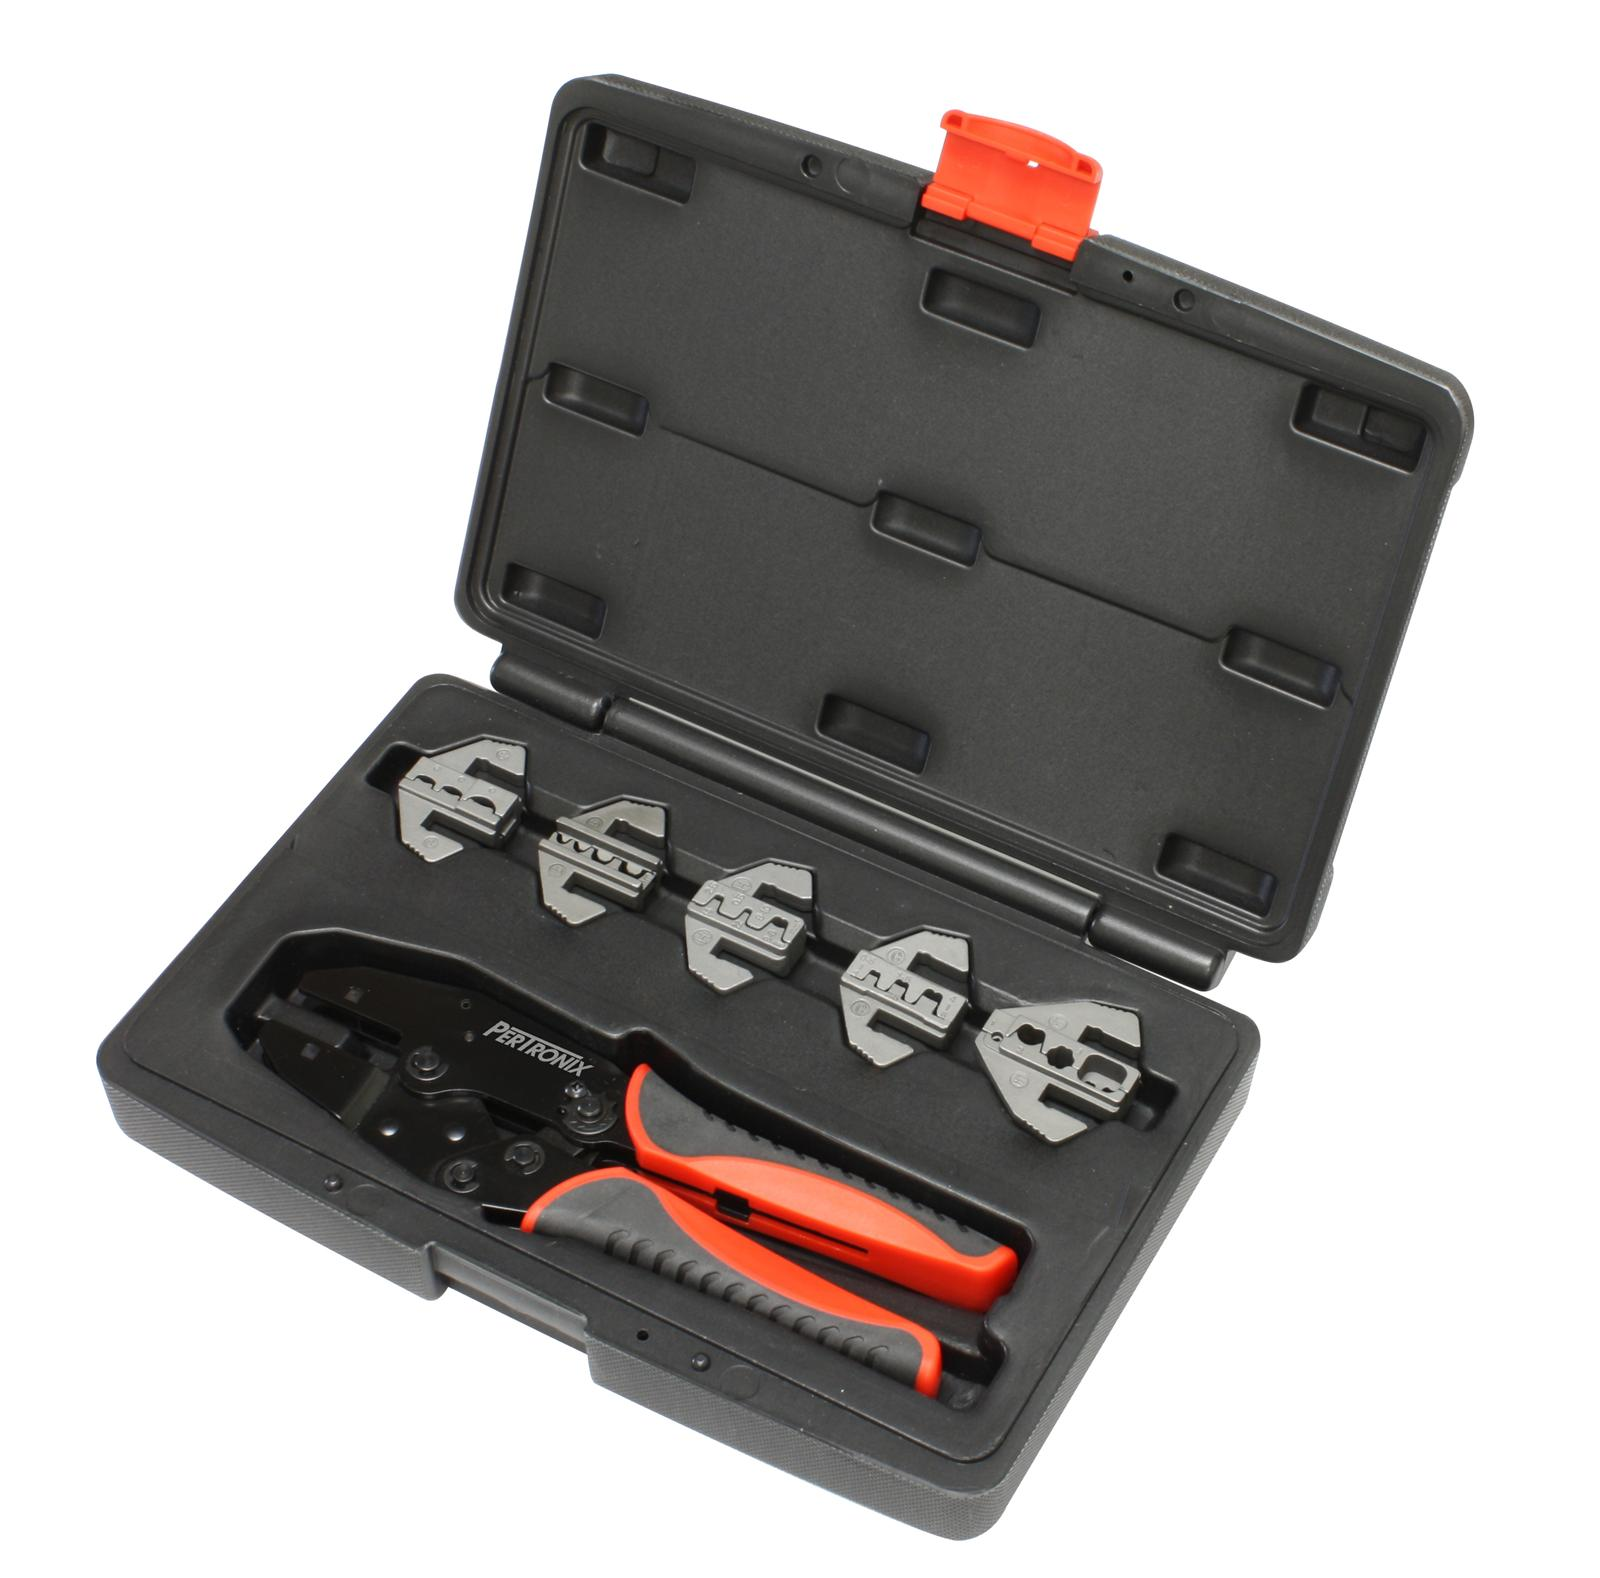 Ki Qf L also Pnx T Xl furthermore T Montage additionally Dr Series Spring Automotive Terminal Crimping Tool Pliers Crimps Barrel Crimper Open Barrel in addition Bp. on open barrel crimp tool